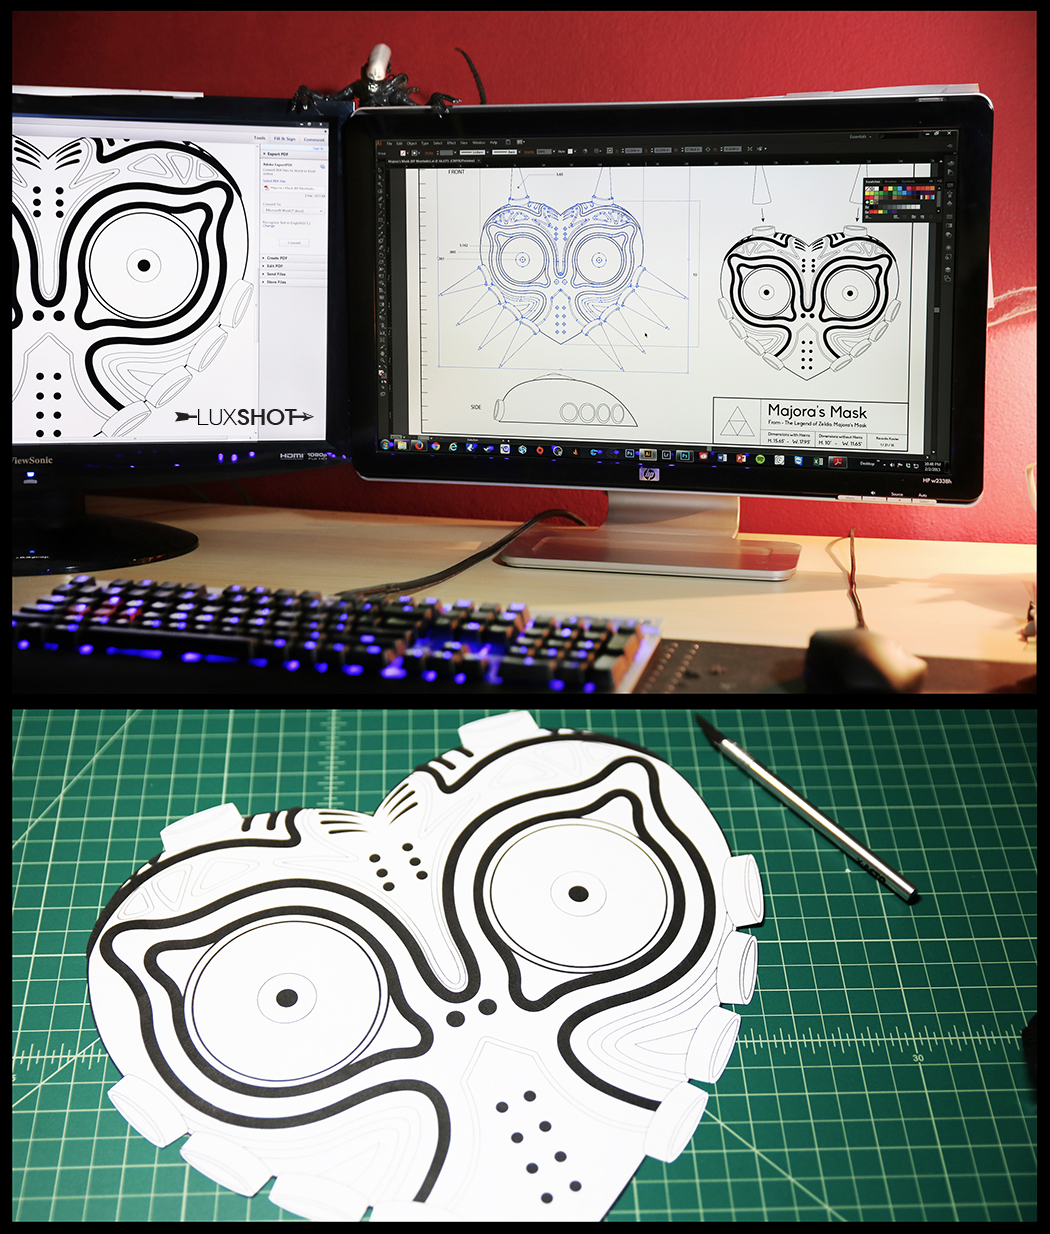 This is how it all started. I drew up my blueprint in Adobe Illustrator with all the details and dimensions of the mask. Once I had it printed to scal